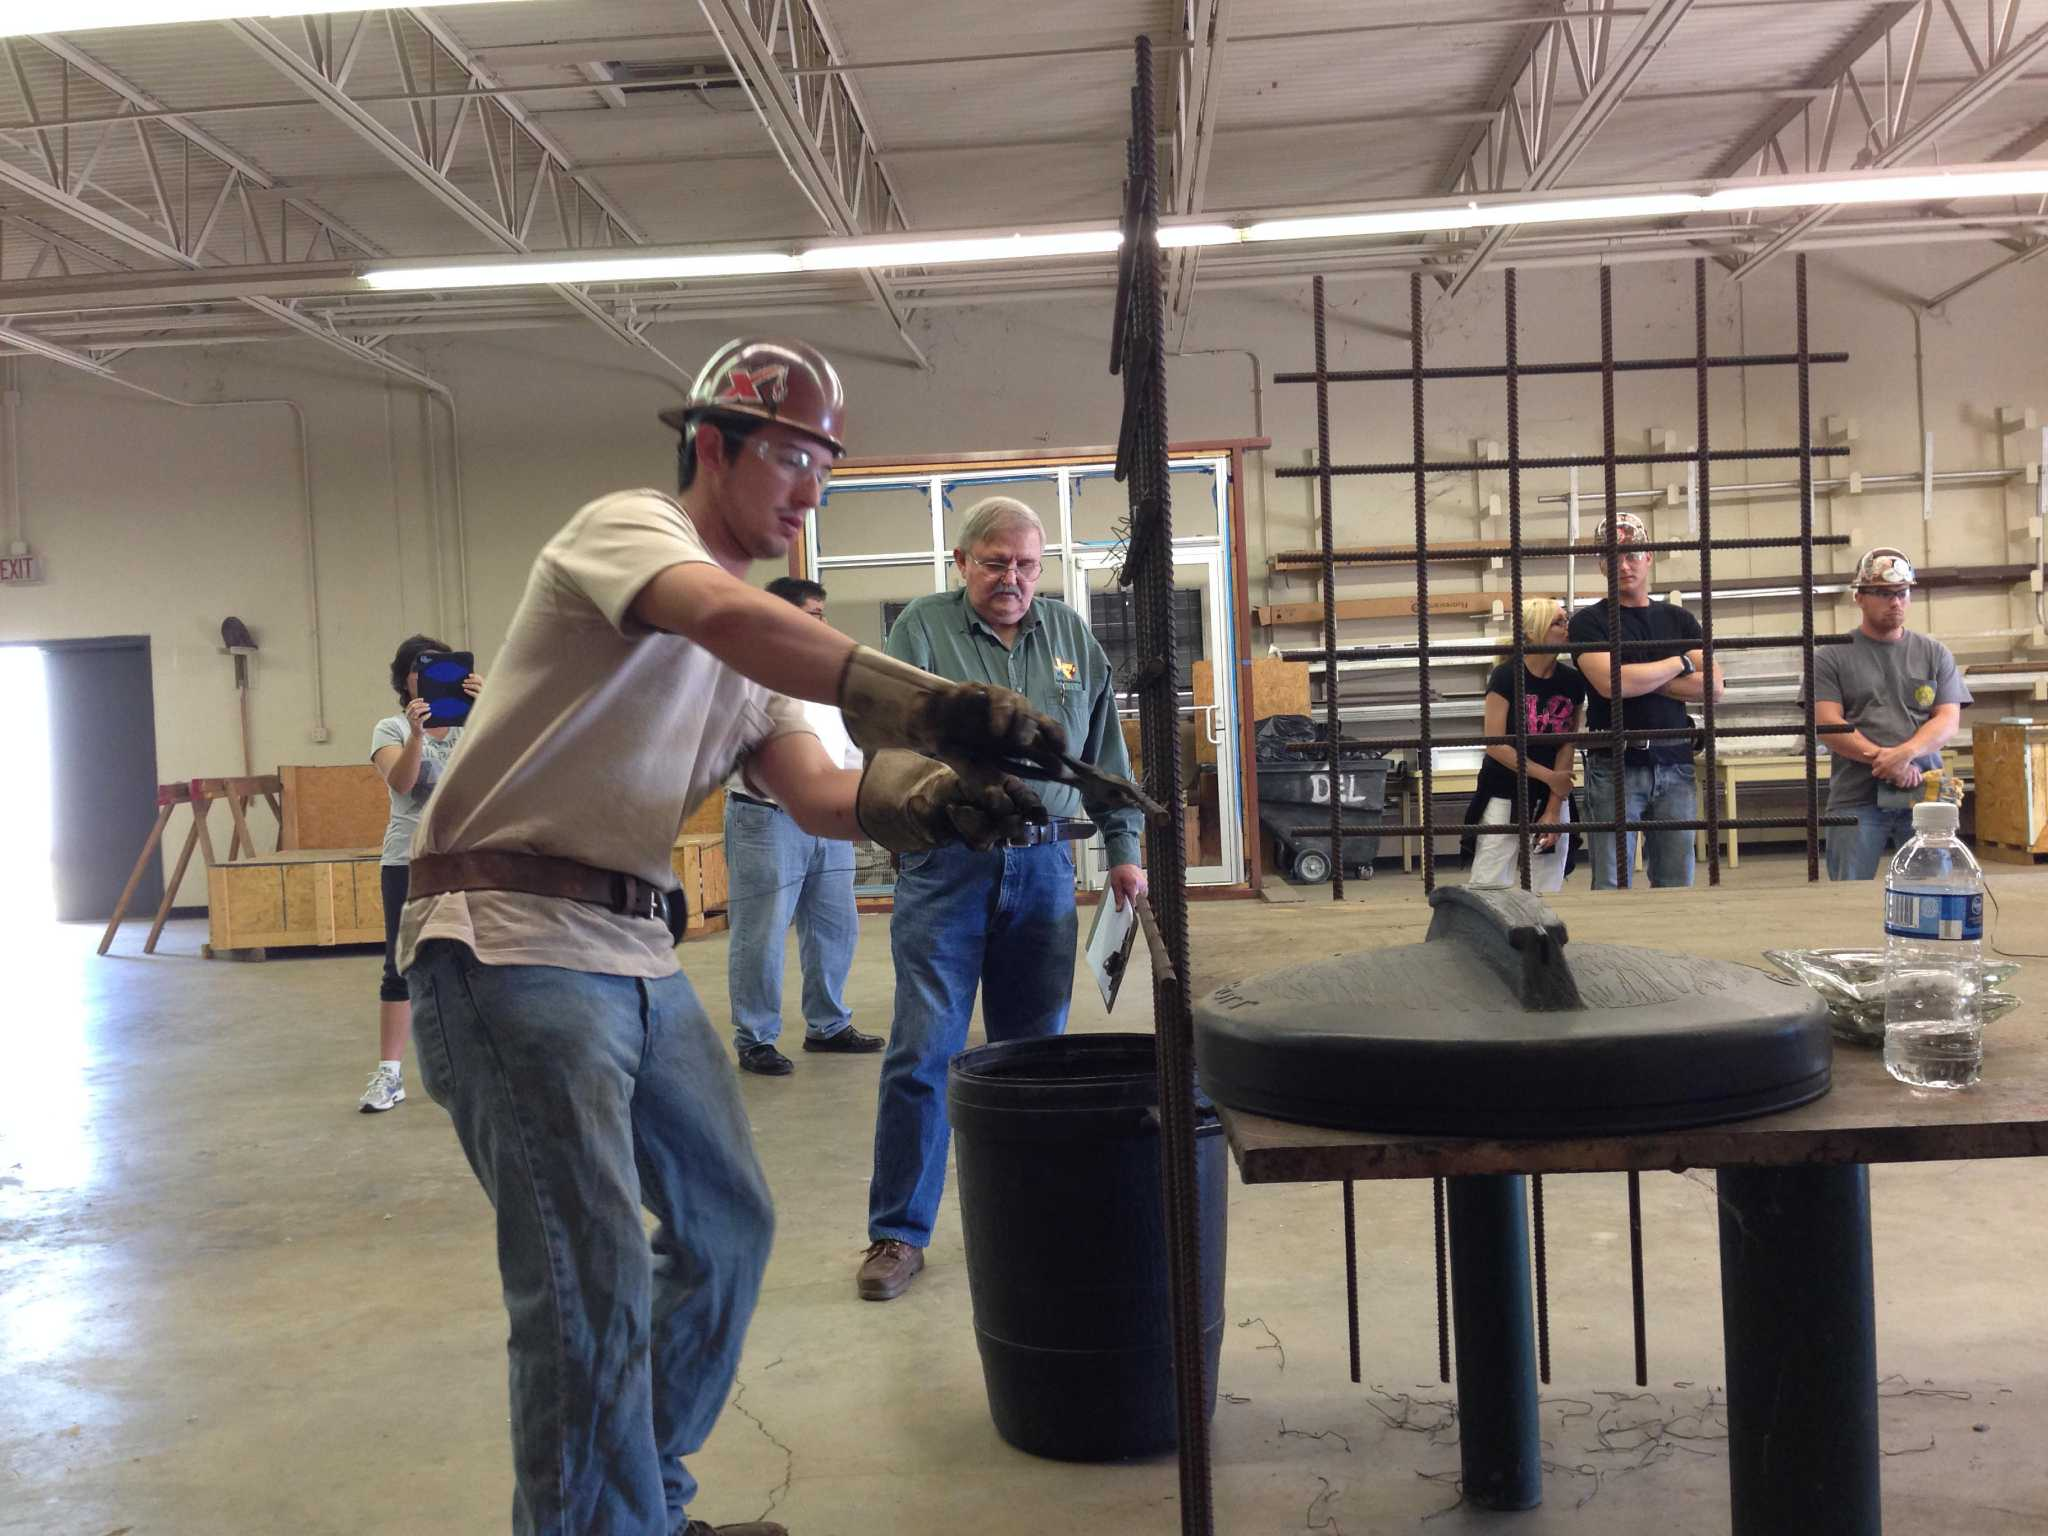 Demand for ironworkers best it's been in 20 years - HoustonChronicle com